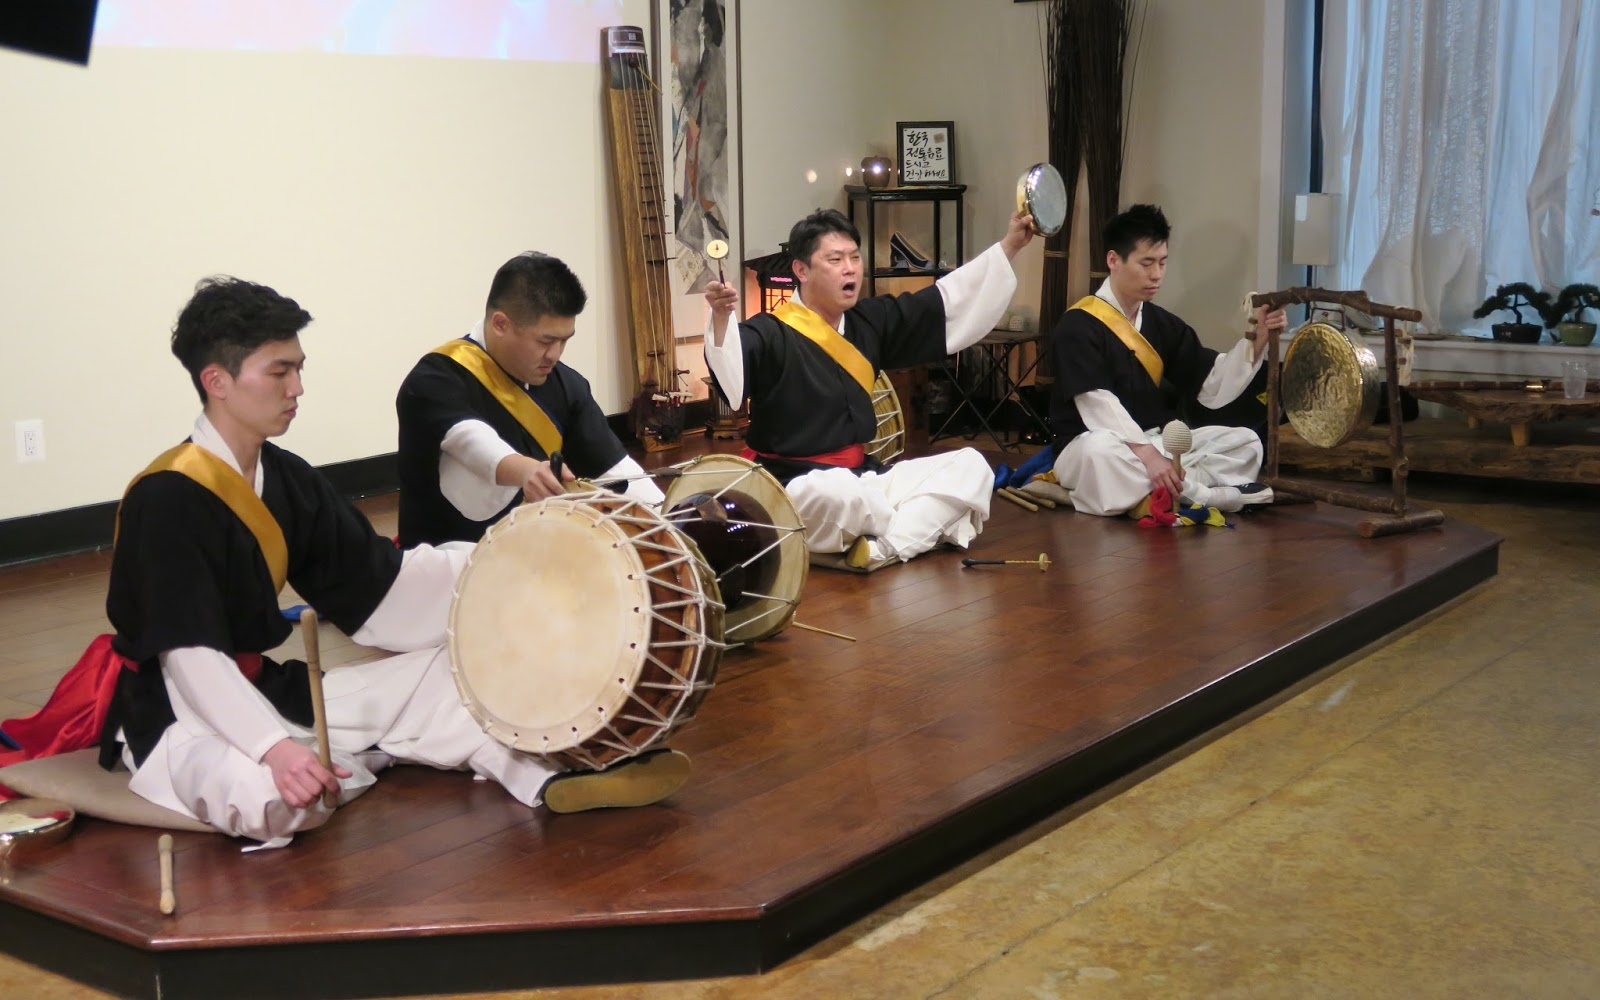 the Annandale Blog: Concert at Annandale teahouse features Korean traditional music